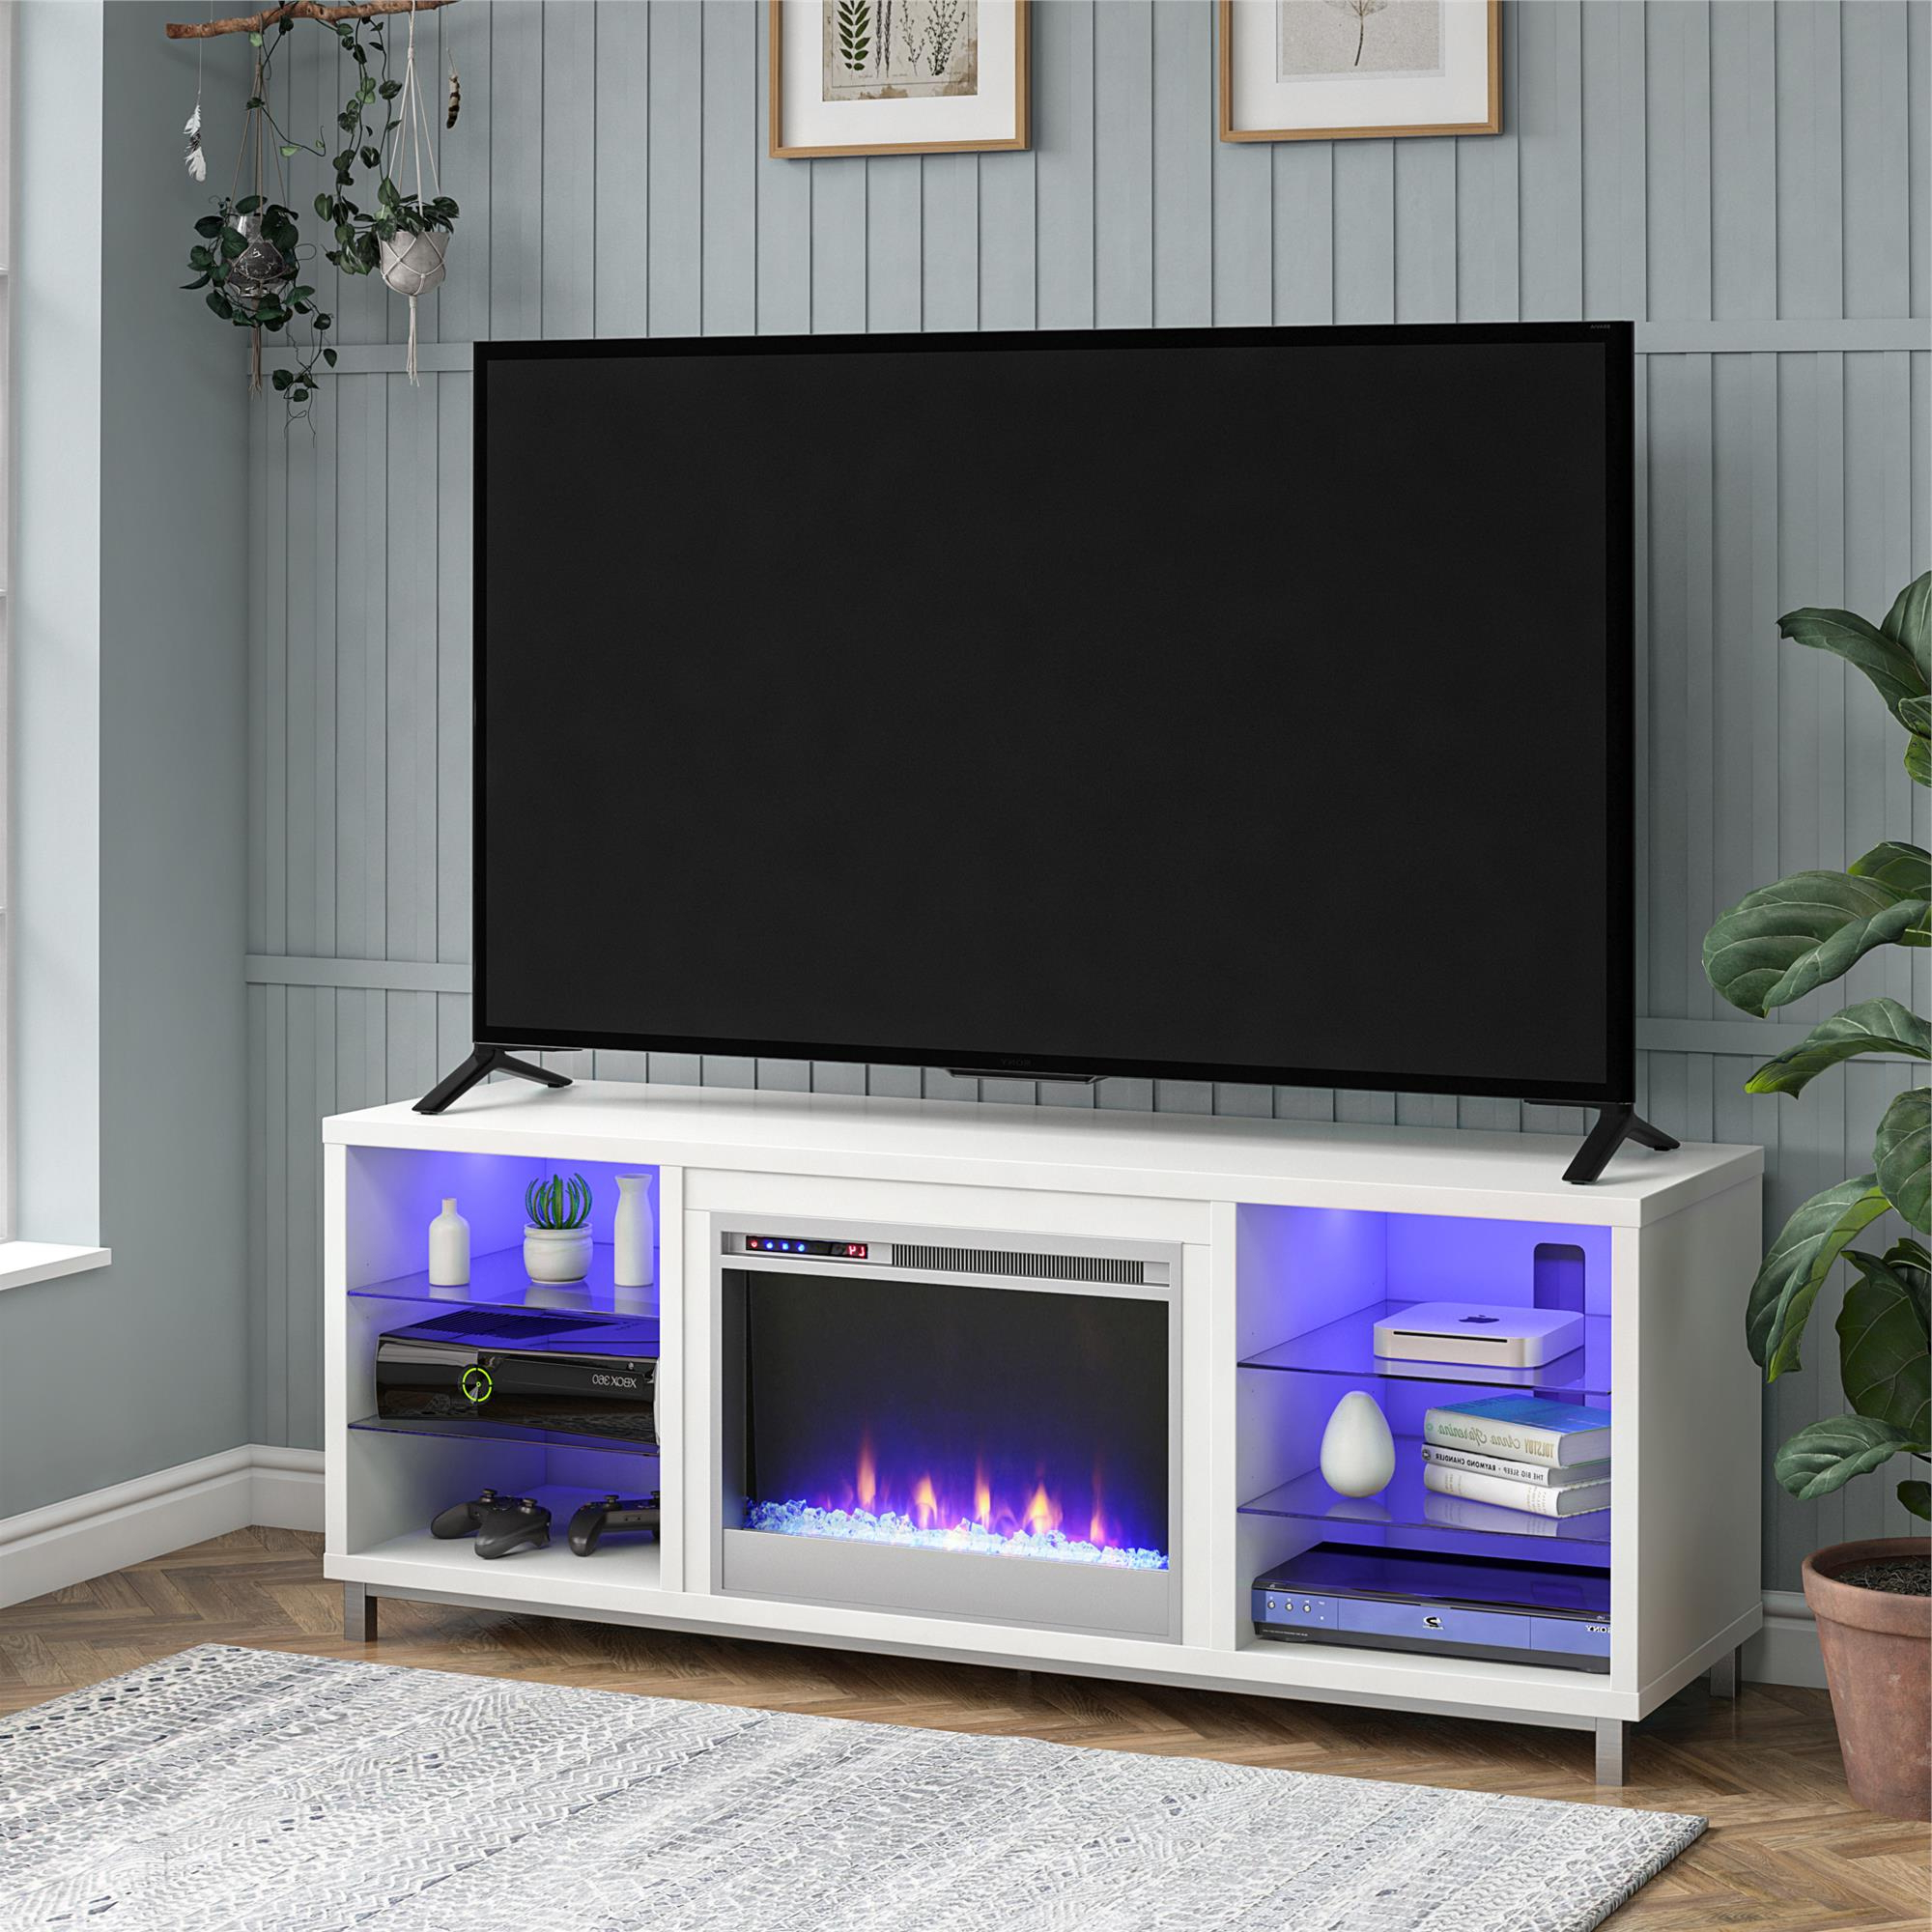 """Ameriwood Home Lumina Fireplace Tv Stand For Tvs Up To 70 With Regard To Kinsella Tv Stands For Tvs Up To 70"""" (View 3 of 20)"""